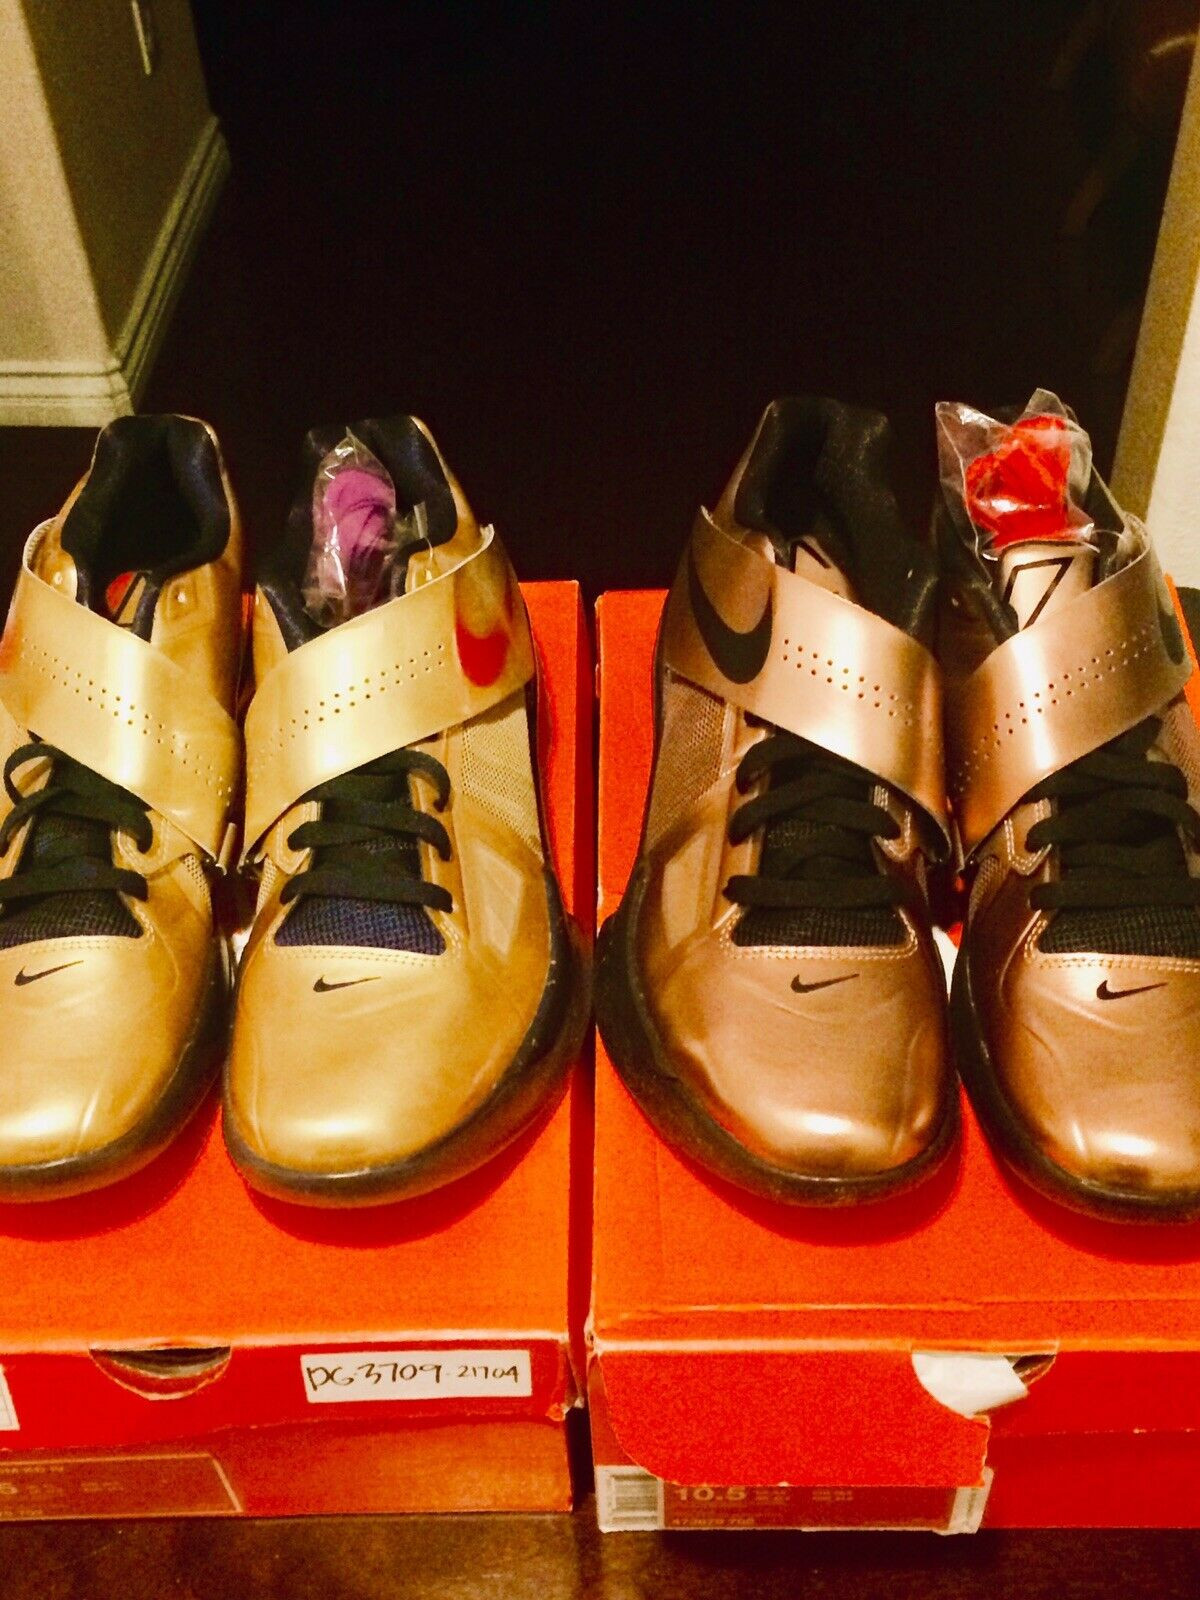 Nike Zoom KD IV Bronze Olympic gold Medal Lot Size 10.5